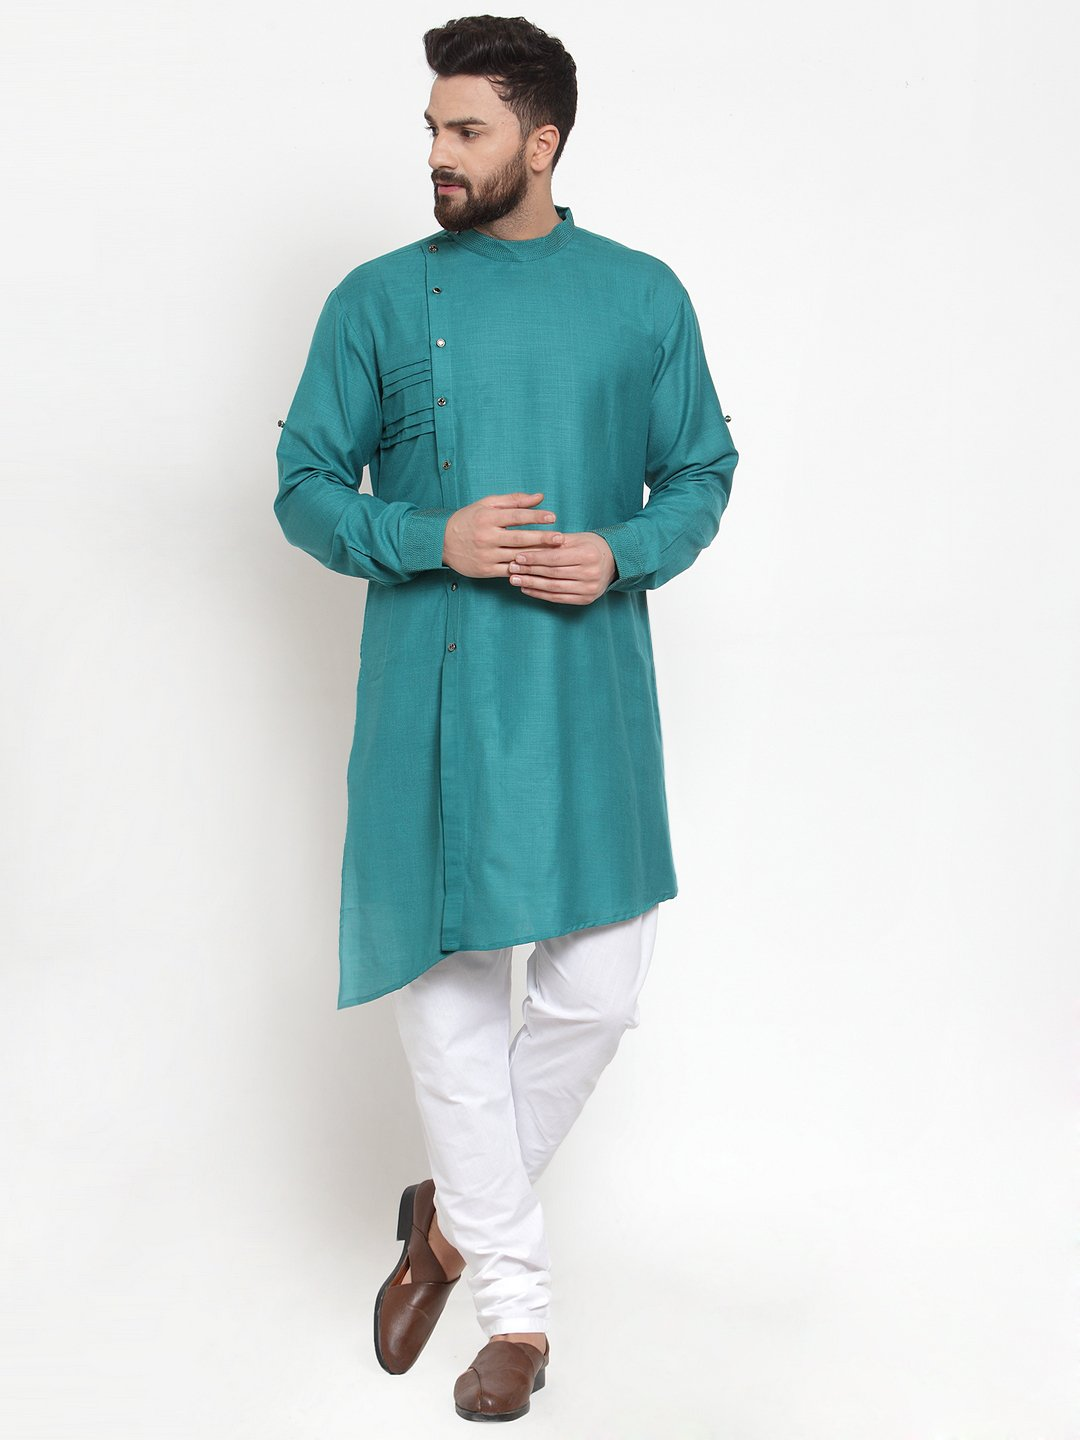 Designer Sea Green Kurta Pajama Churidar Set For Men By Treemoda